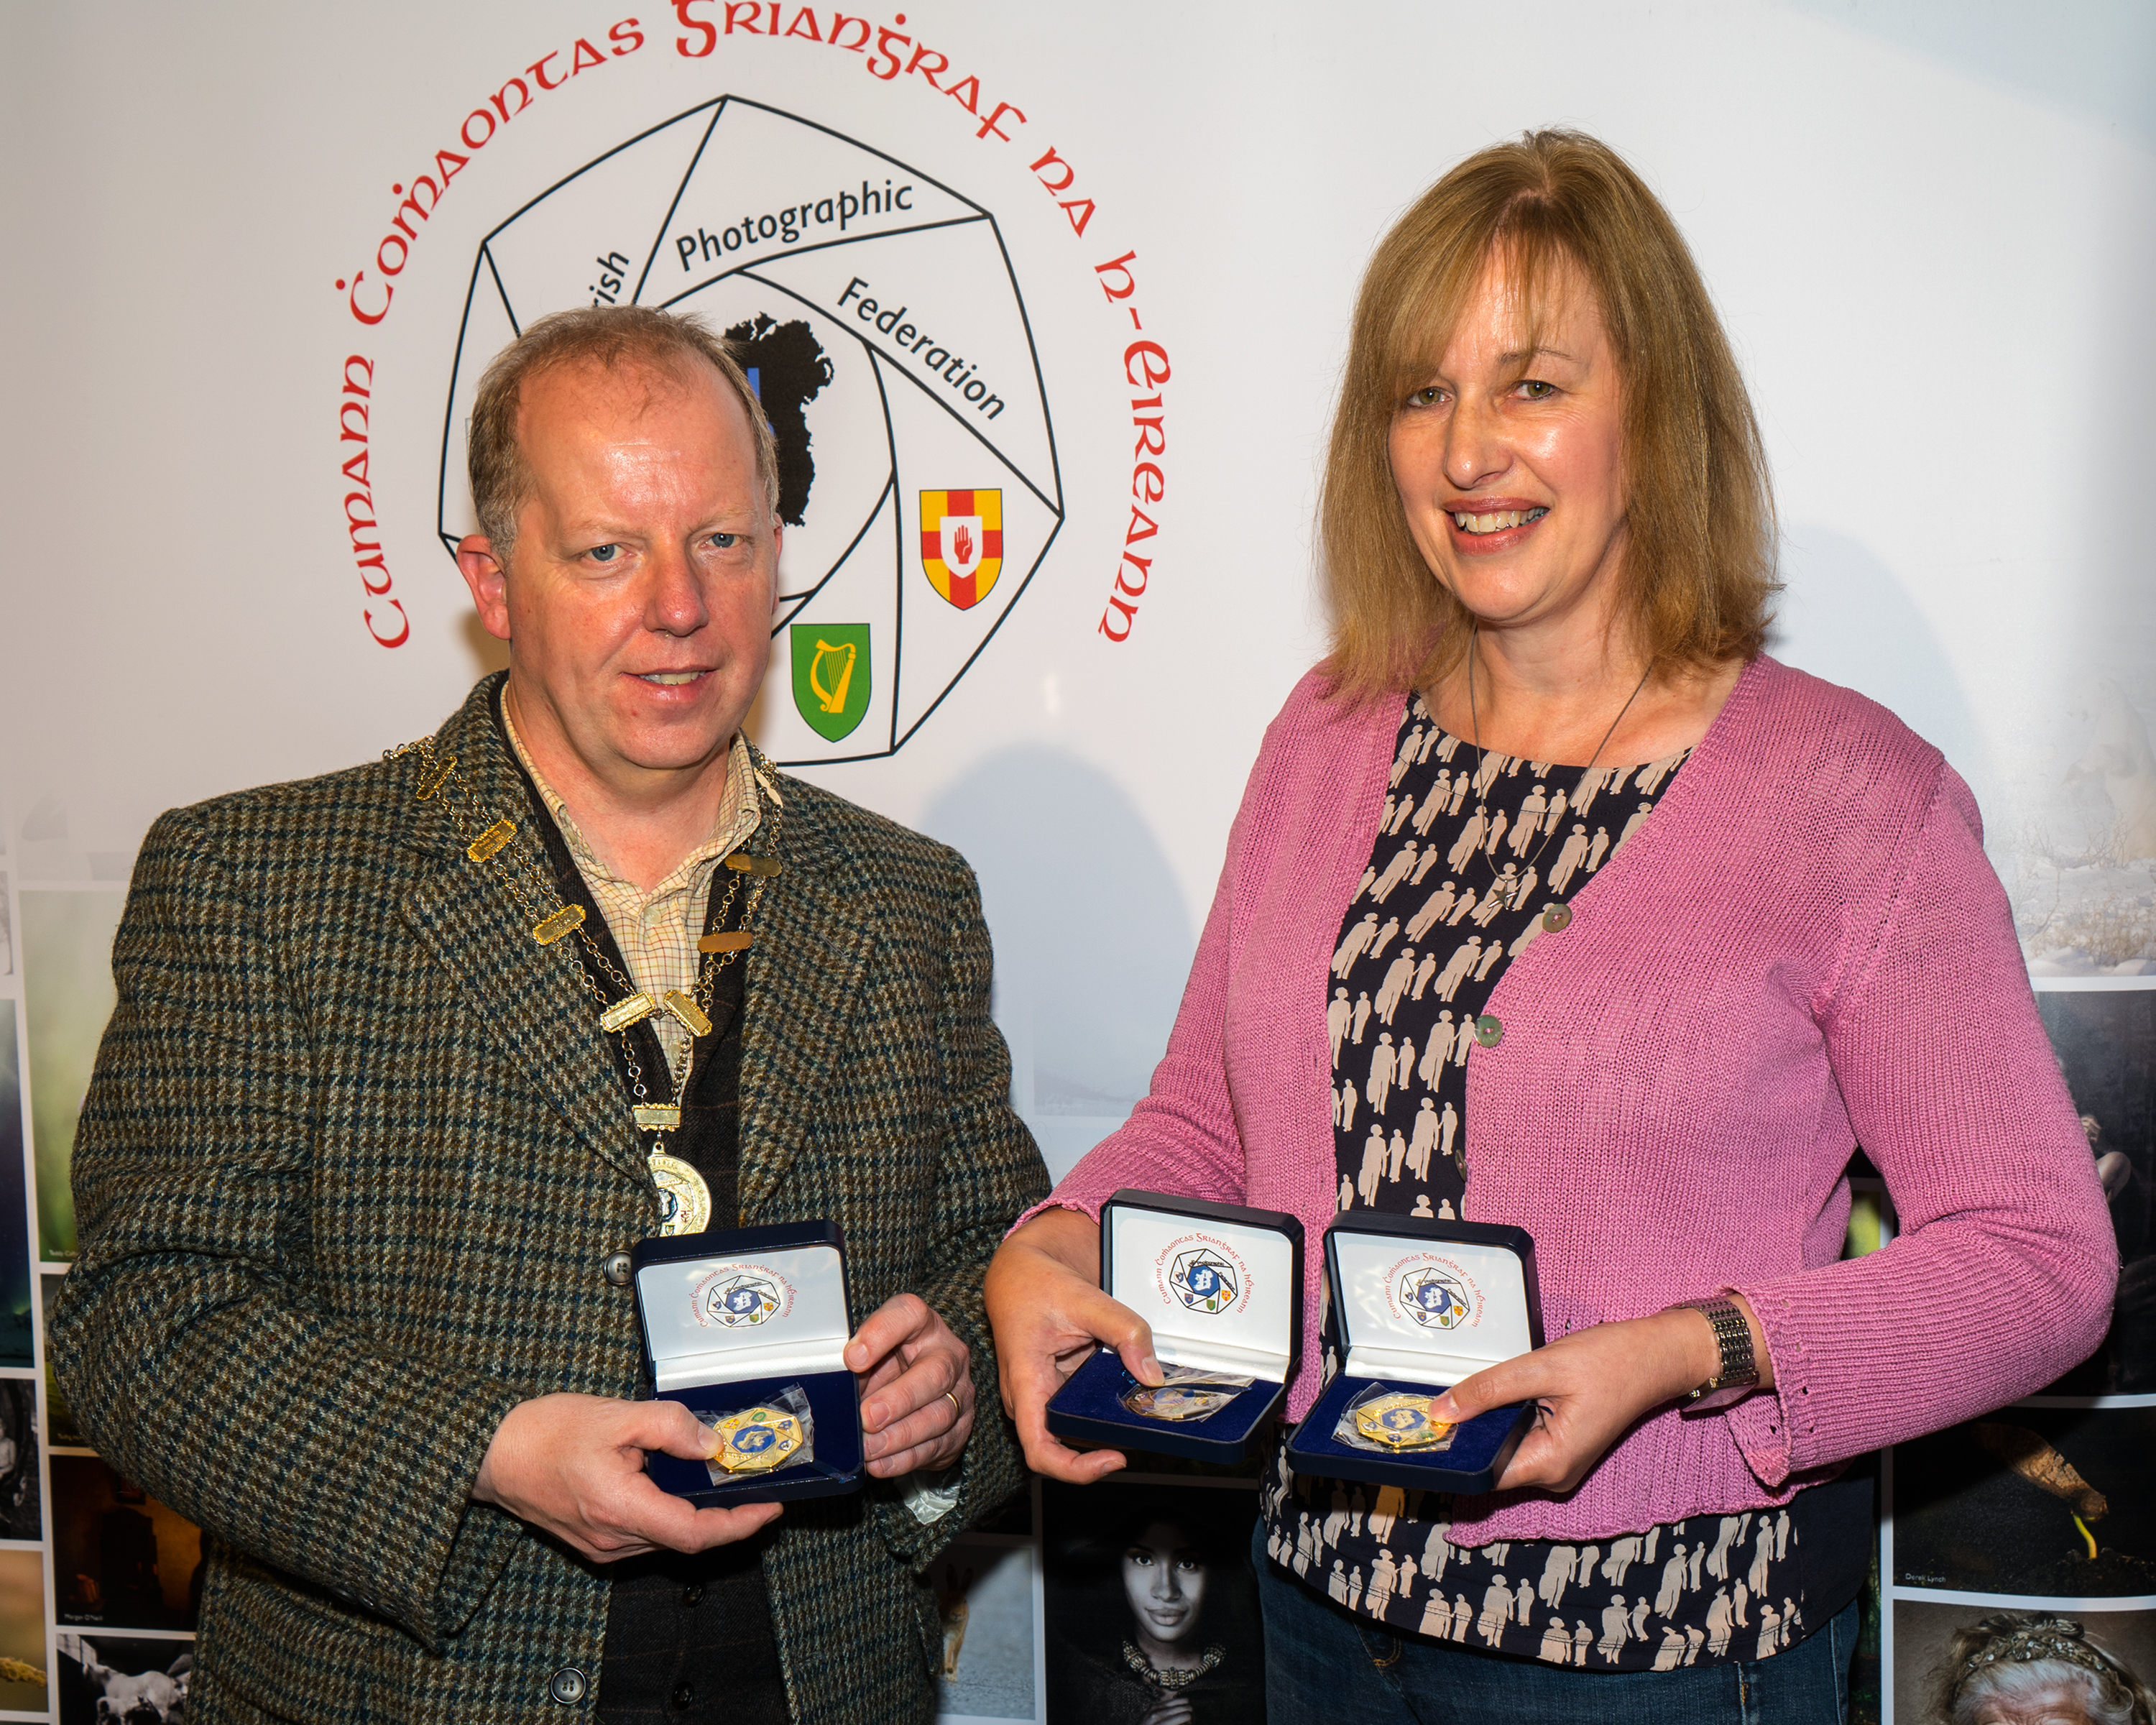 Dominic Reddin, FIPF, presenting 2 gold medals, a bronze medal to Judith Kimber, LIPF, DPAGB AV for sequence Safe